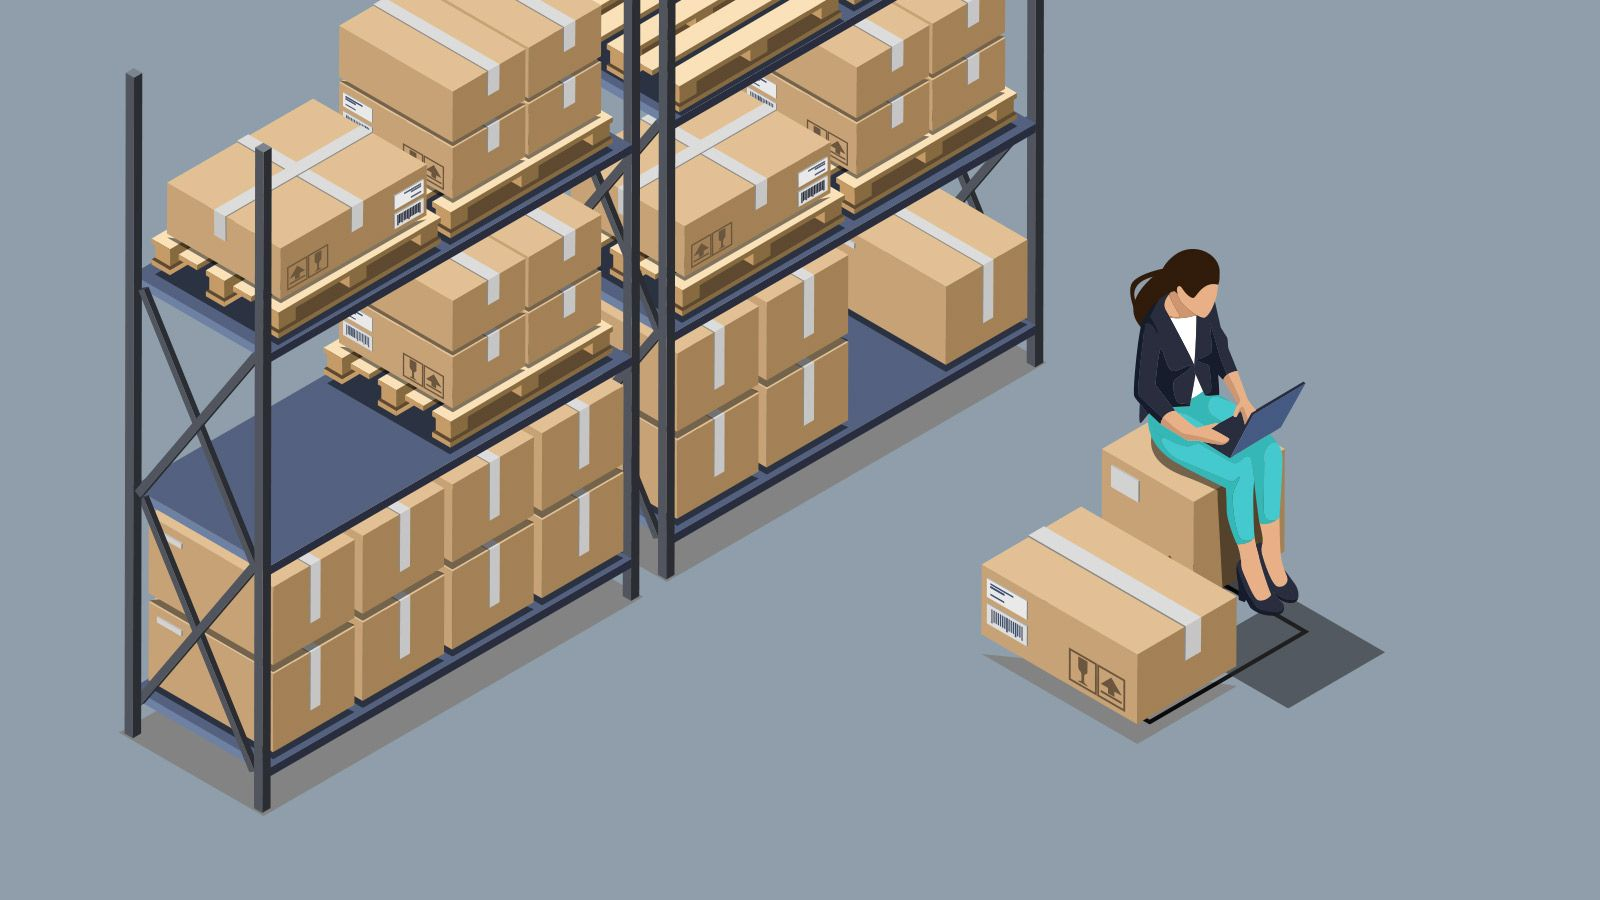 Planning Order Fulfillment for a Big Product Launch